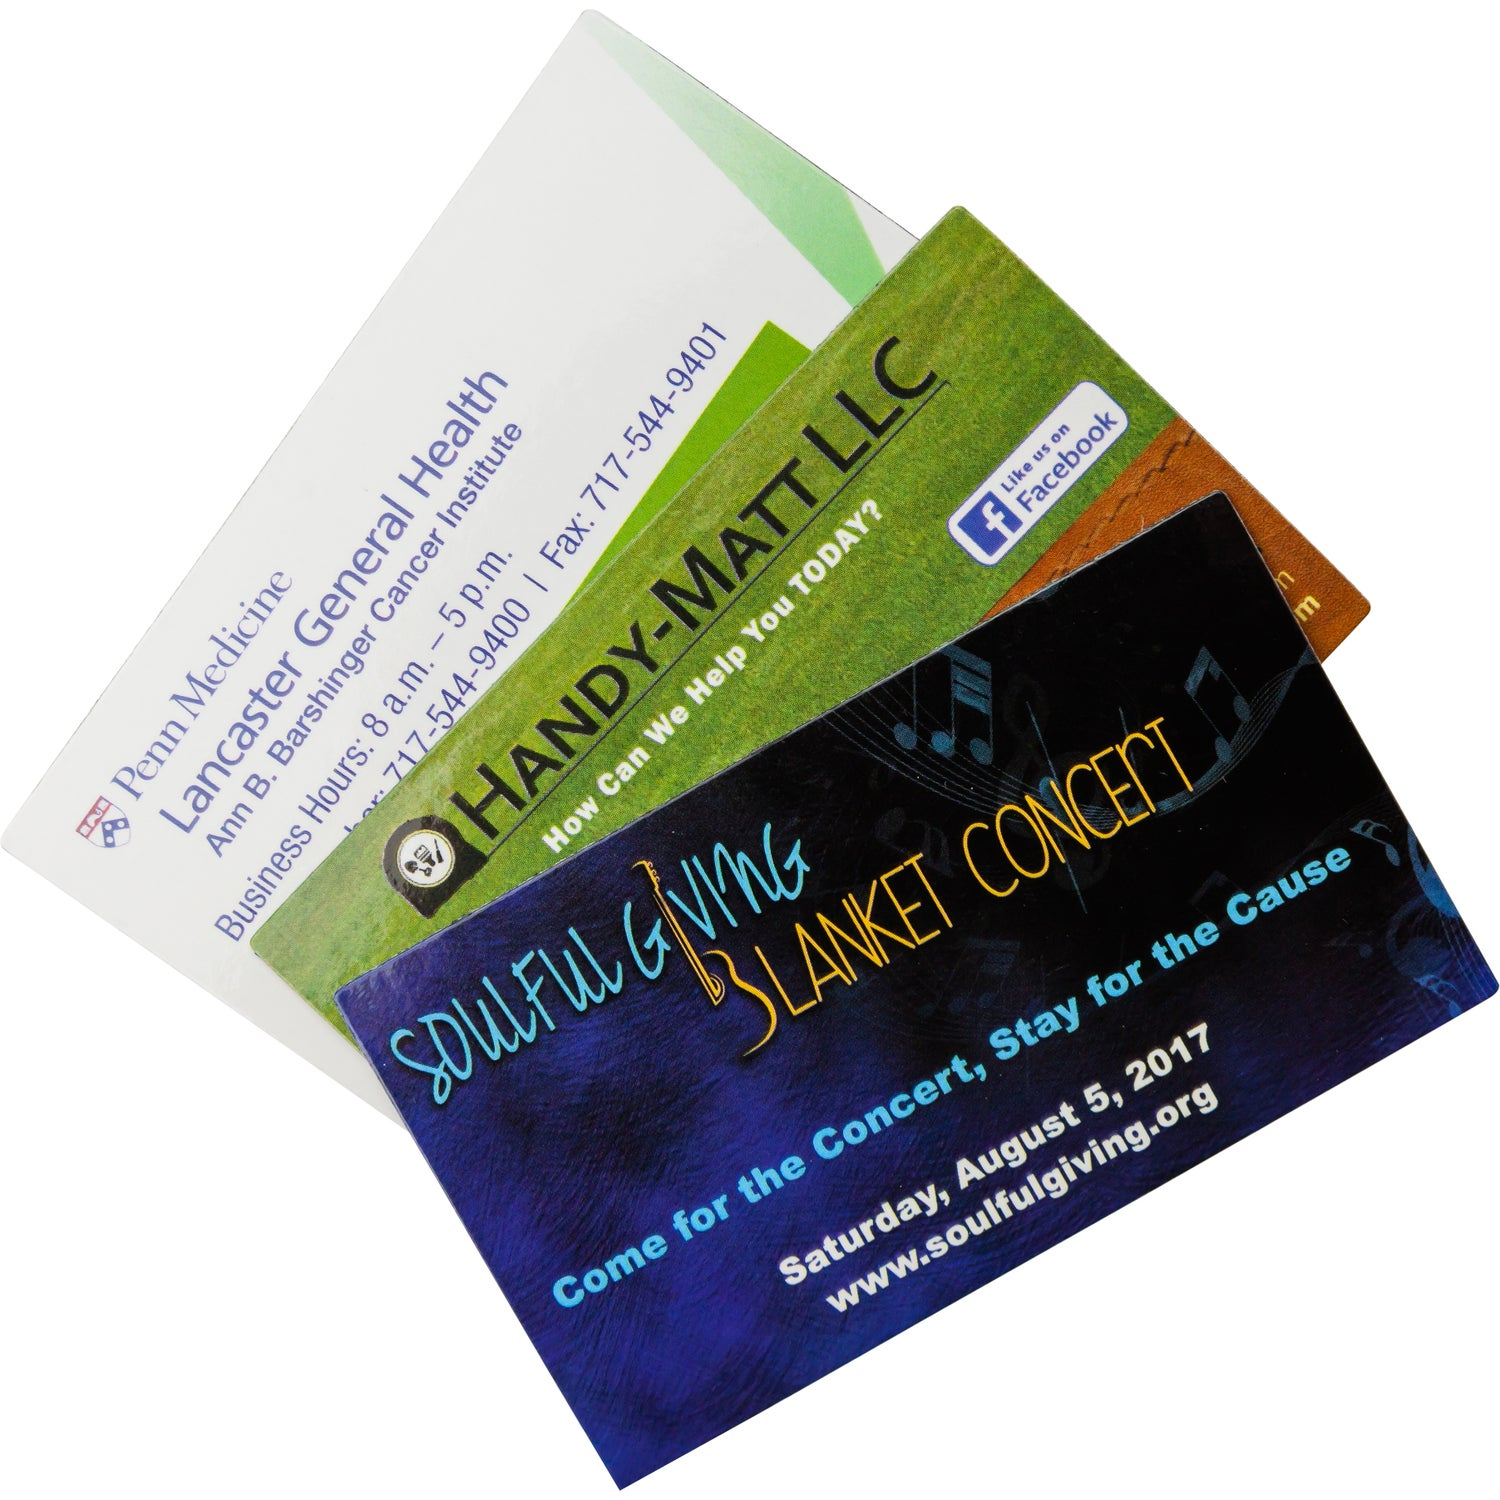 Promotional 2 x 35 020 thickness business card magnets with full color imprint business card magnet 2 colourmoves